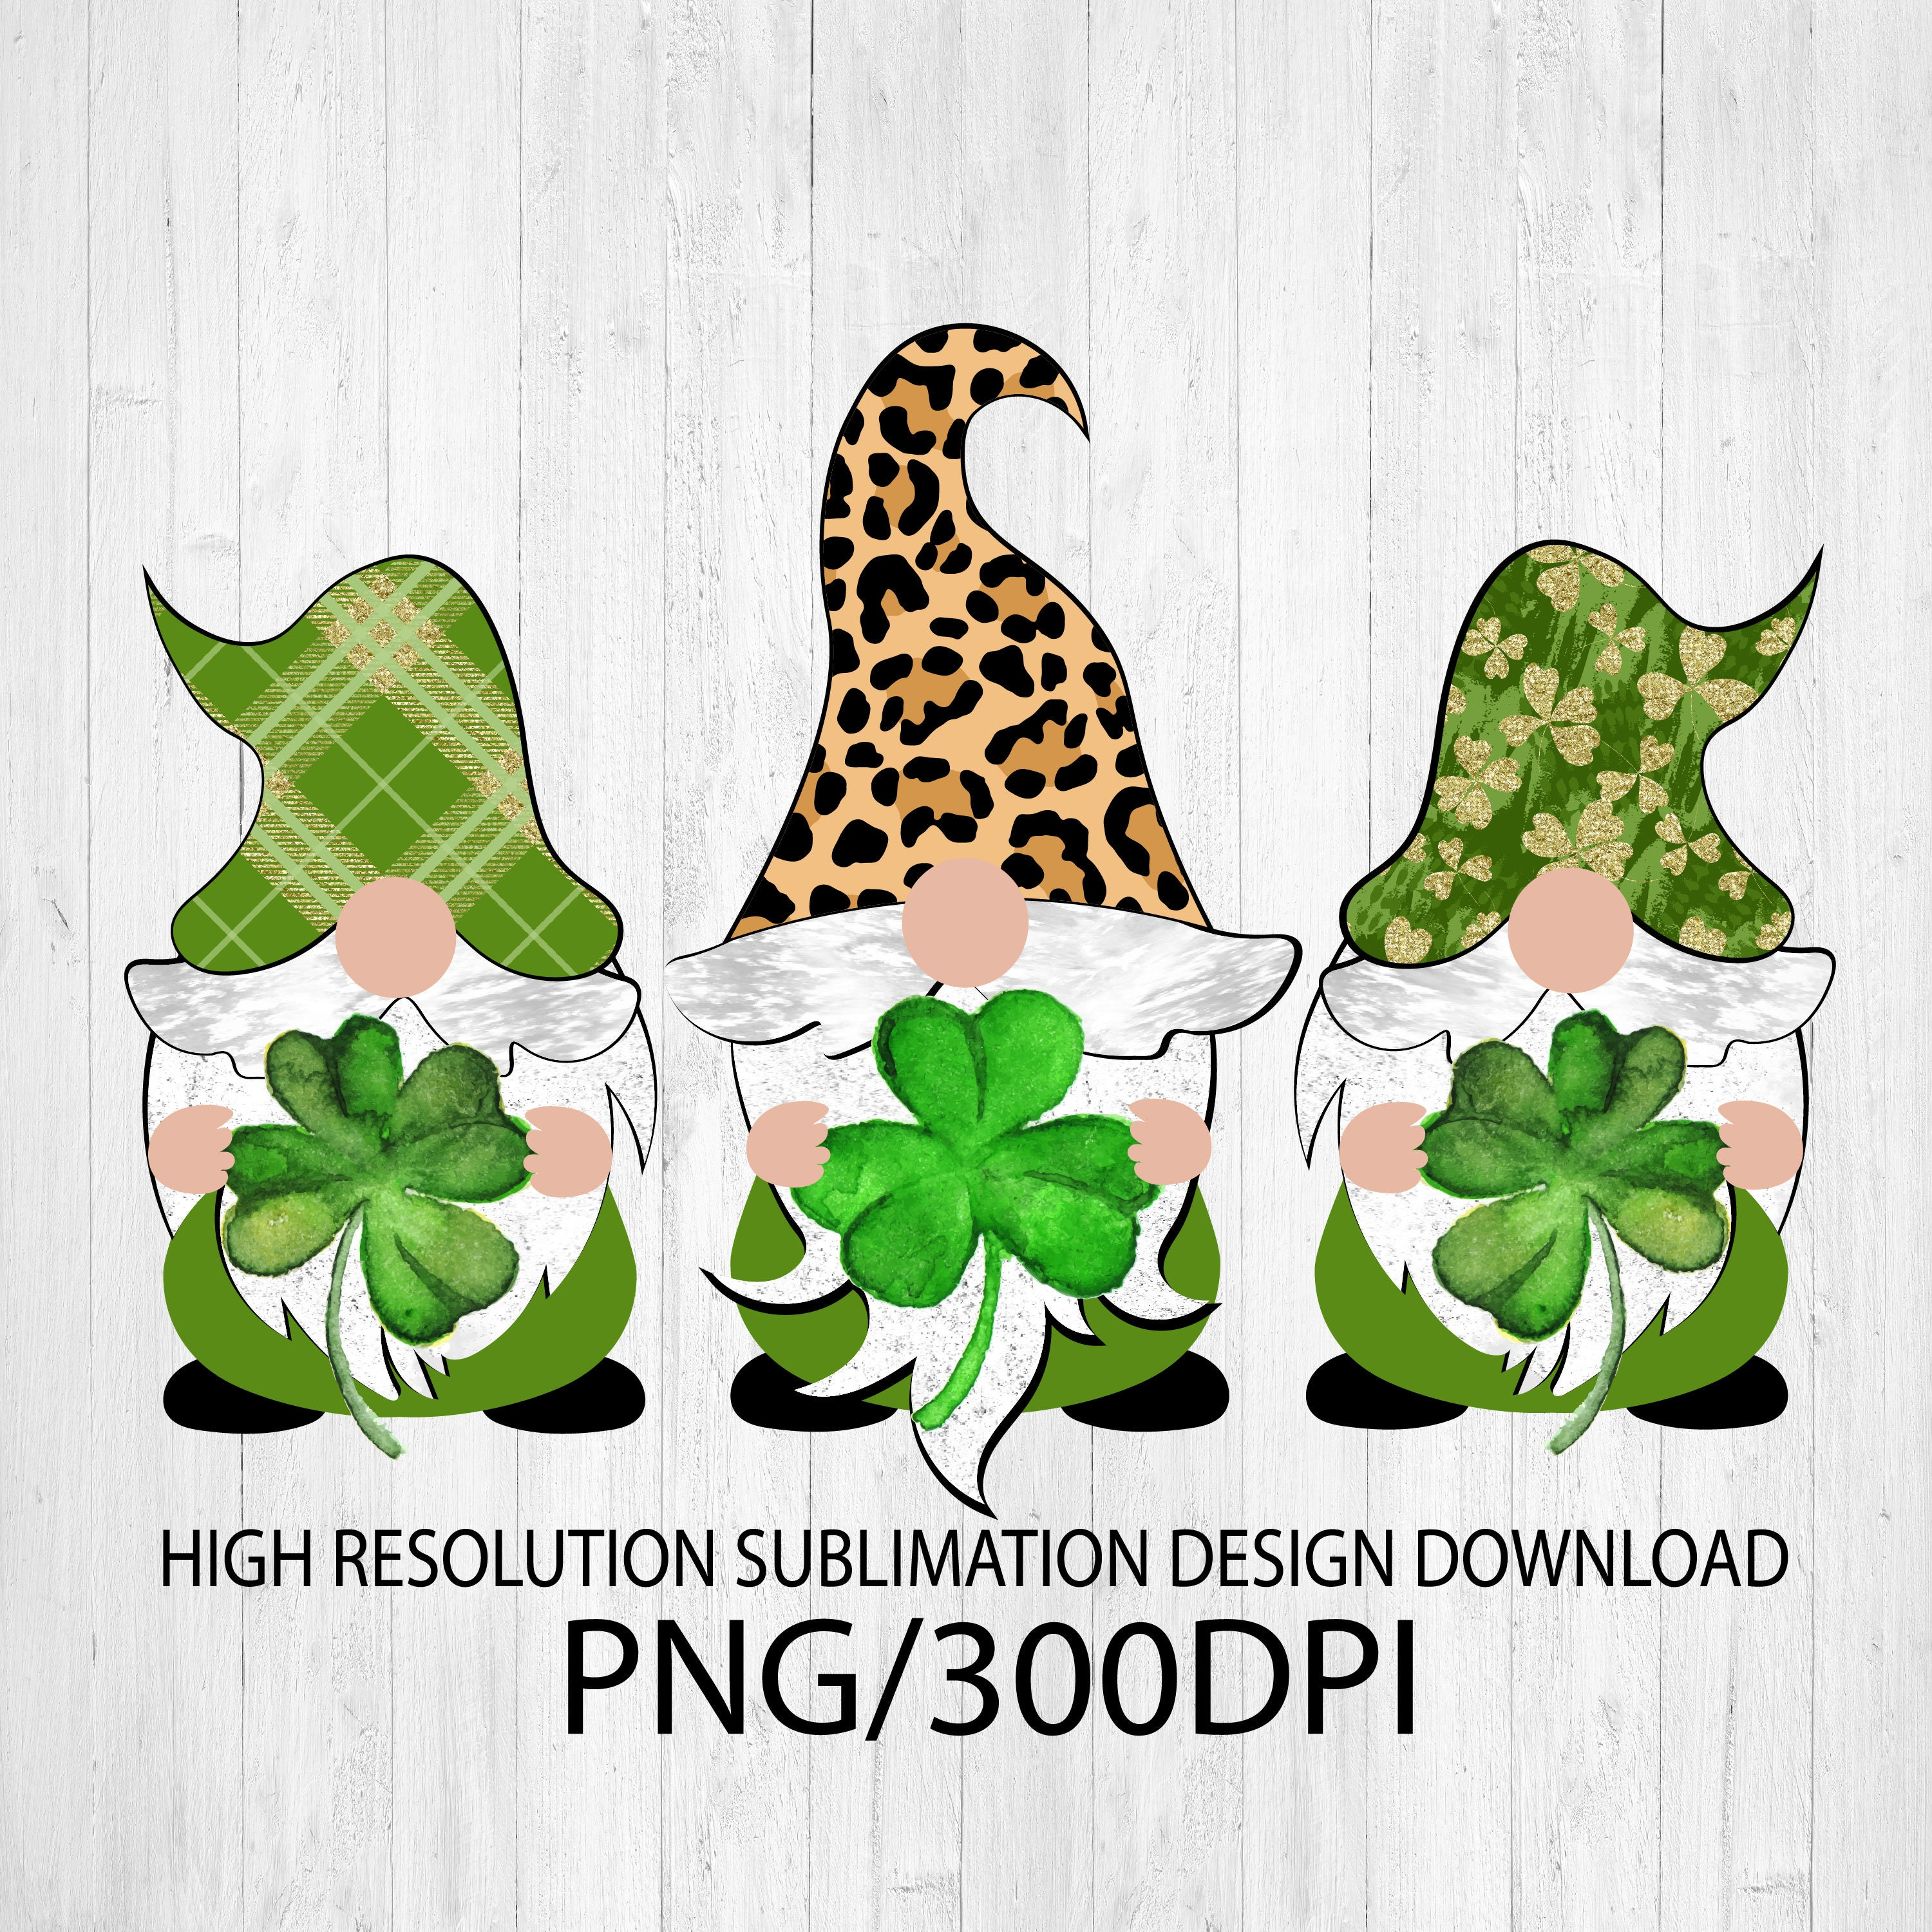 Download St. Patrick's Day Gnomes PNG file for sublimation printing ...